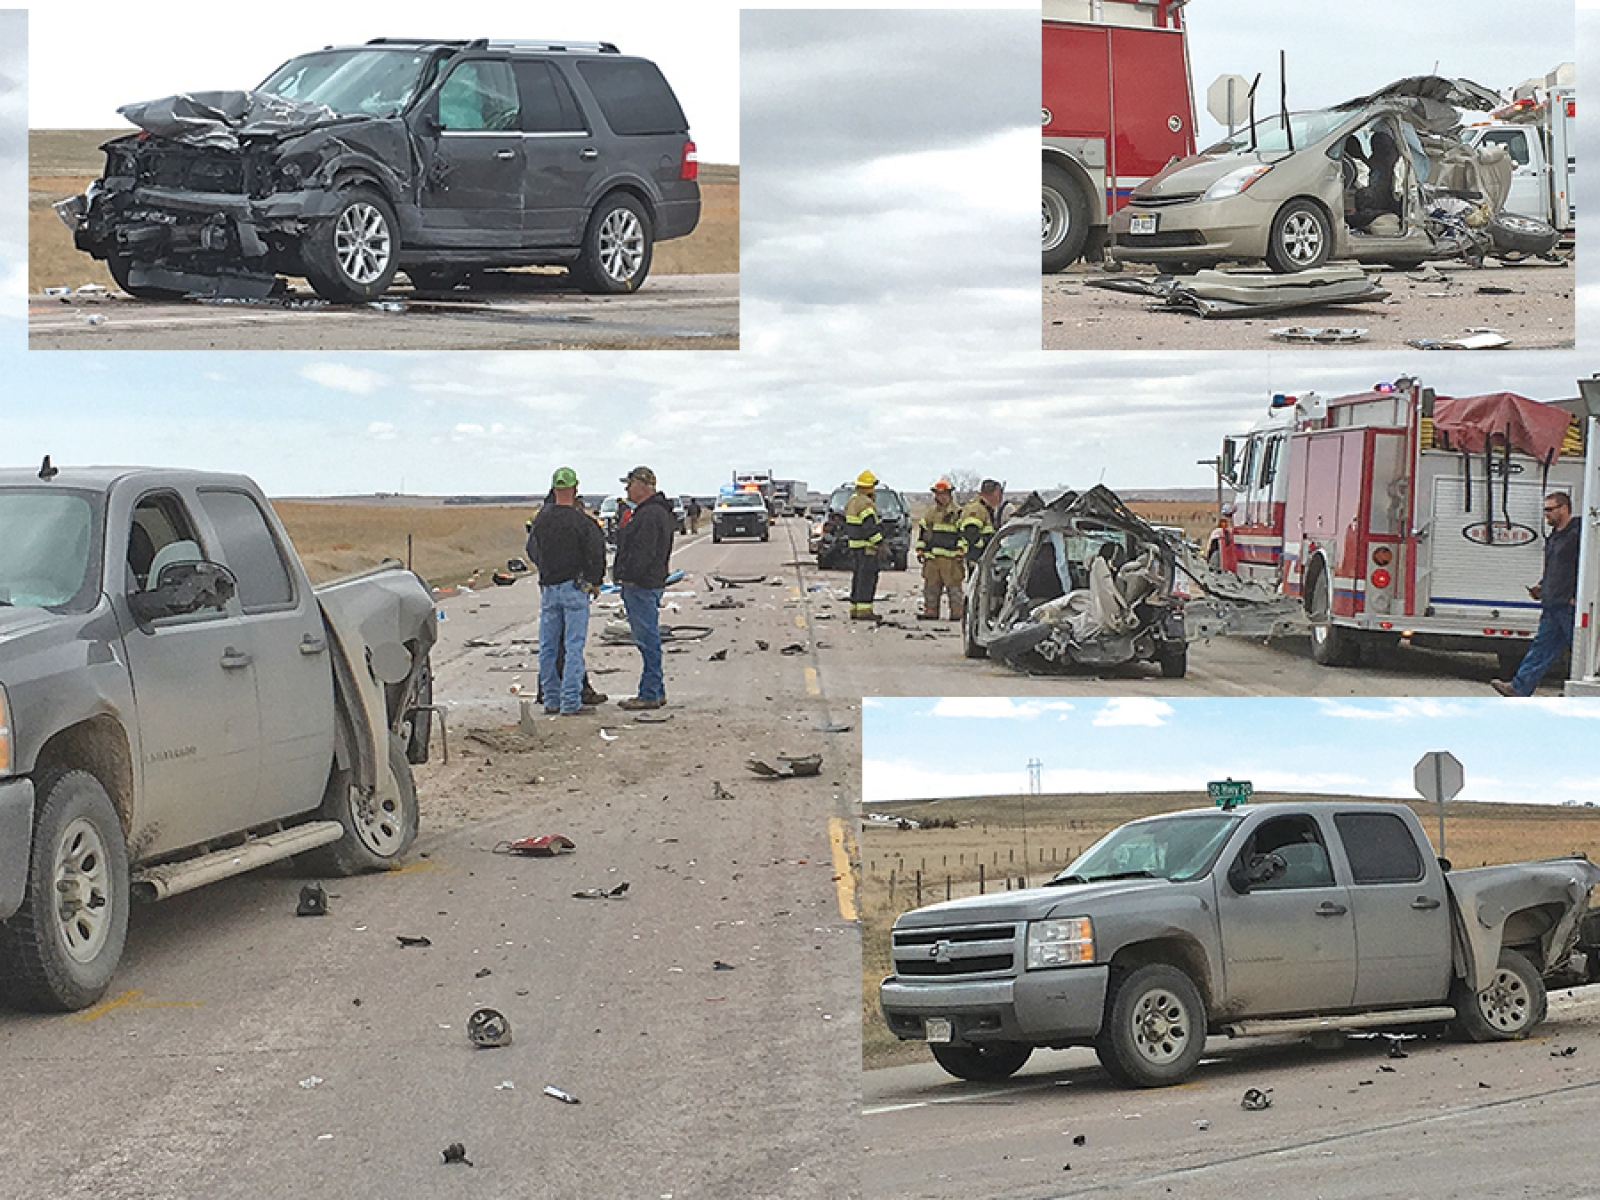 3-vehicle accident totals 2 vehicles, results in minor injuries